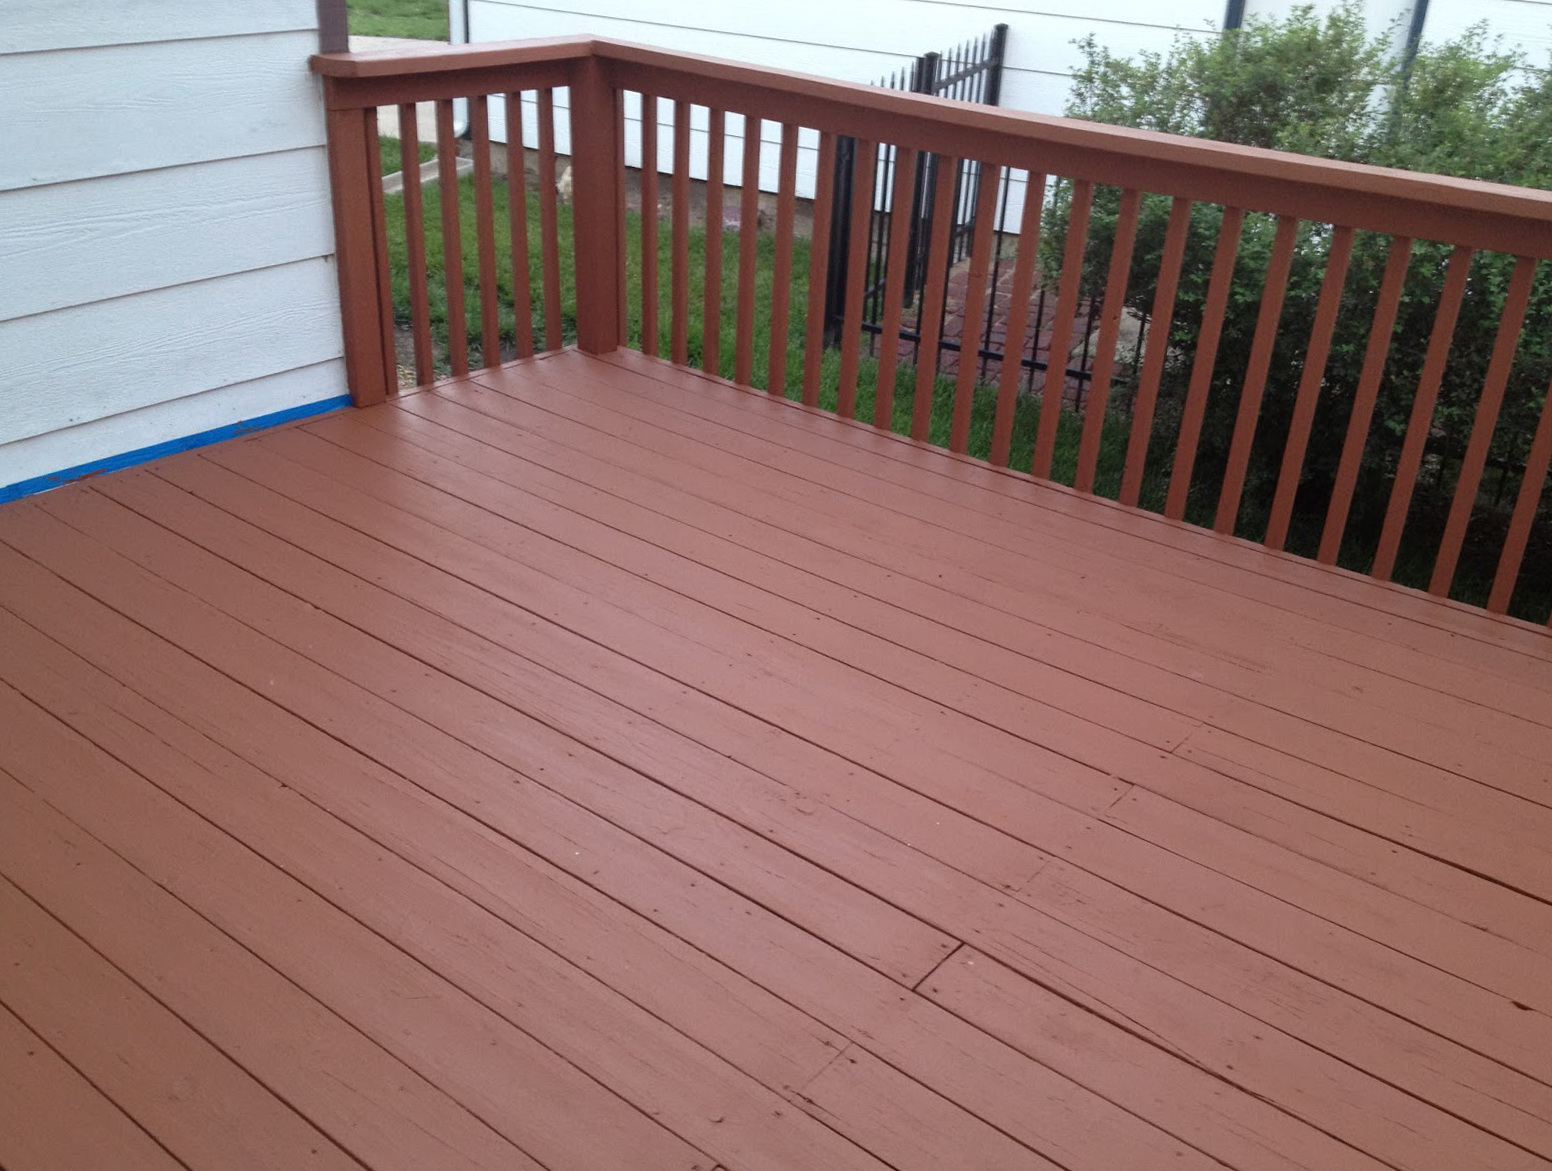 Deck stain colors home depot home design ideas for Deck paint colors home depot